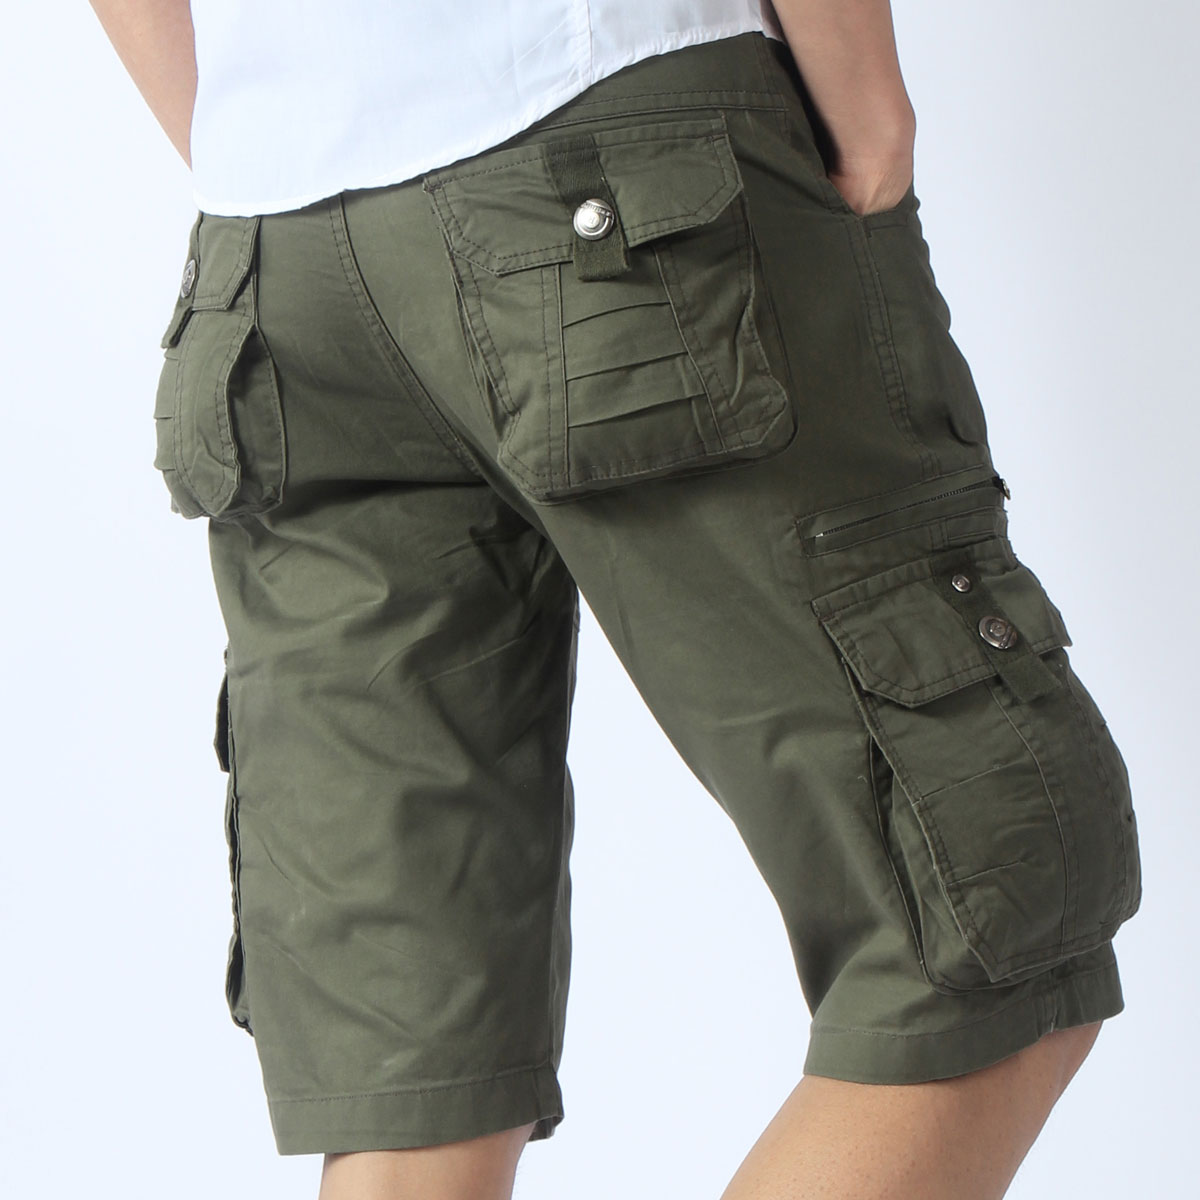 Compare Prices on Cool Cargo Shorts for Men- Online Shopping/Buy ...